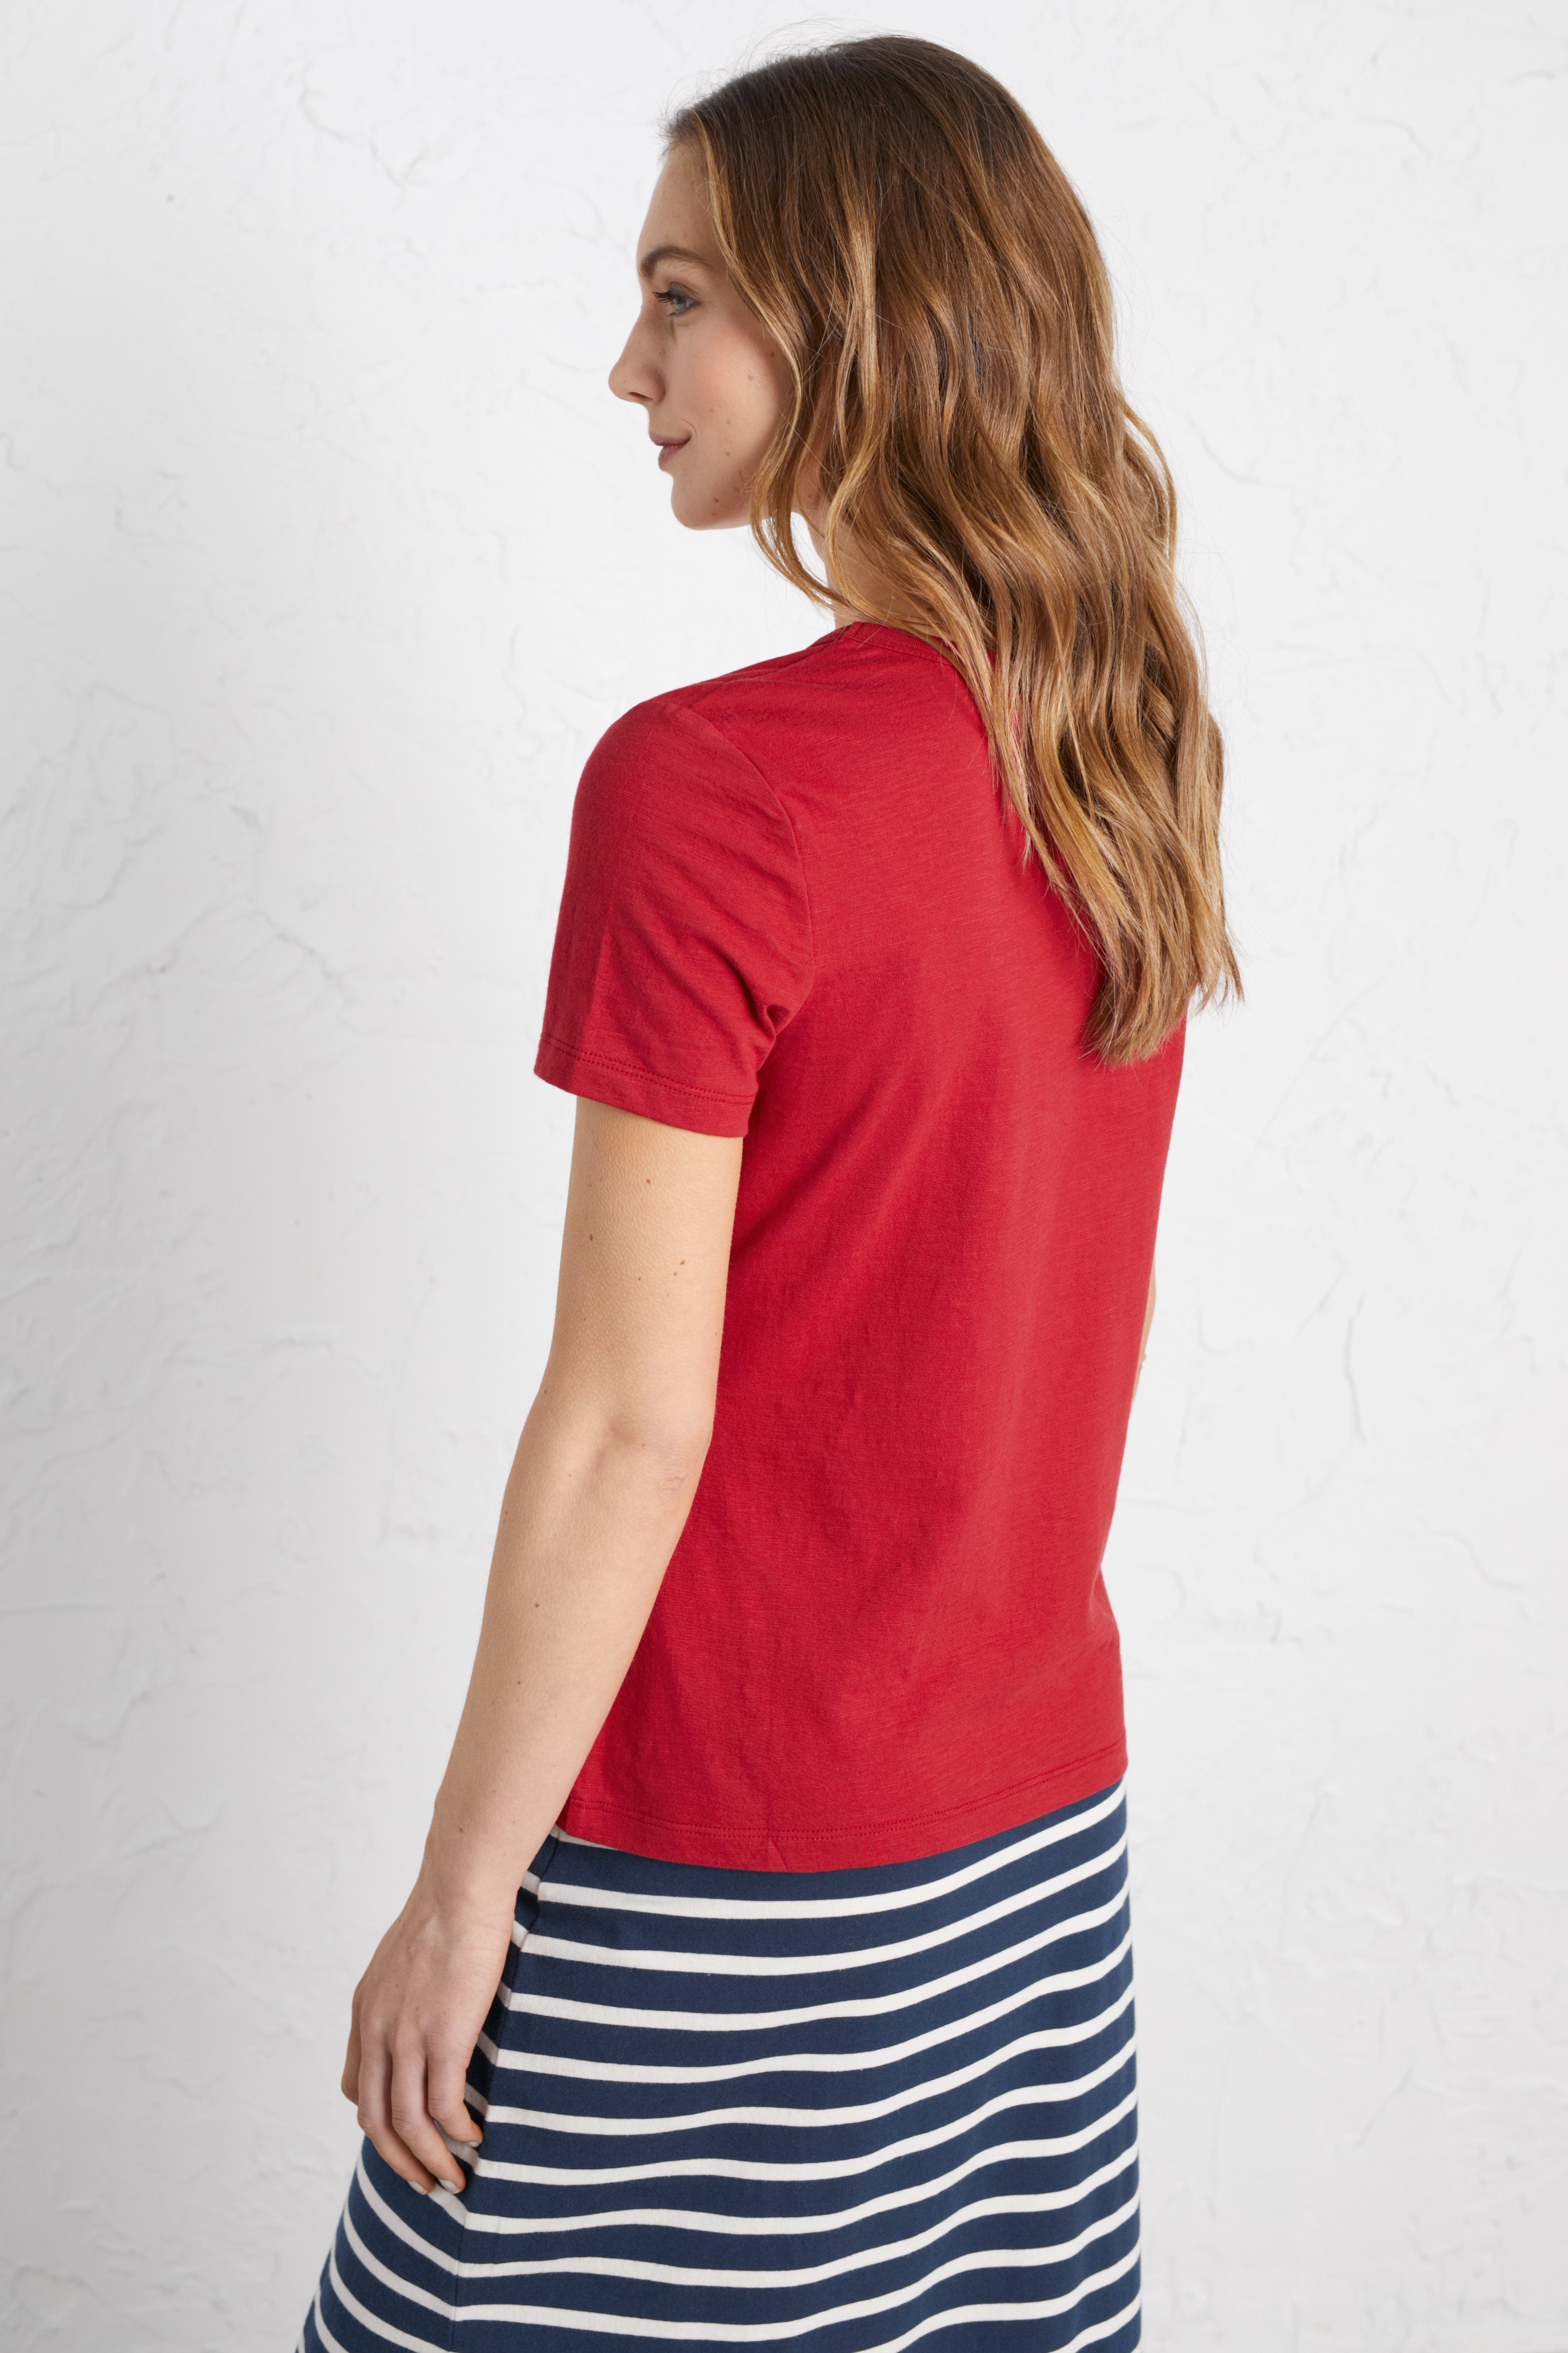 Seasalt Reflection T-Shirt for Ladies in Rudder